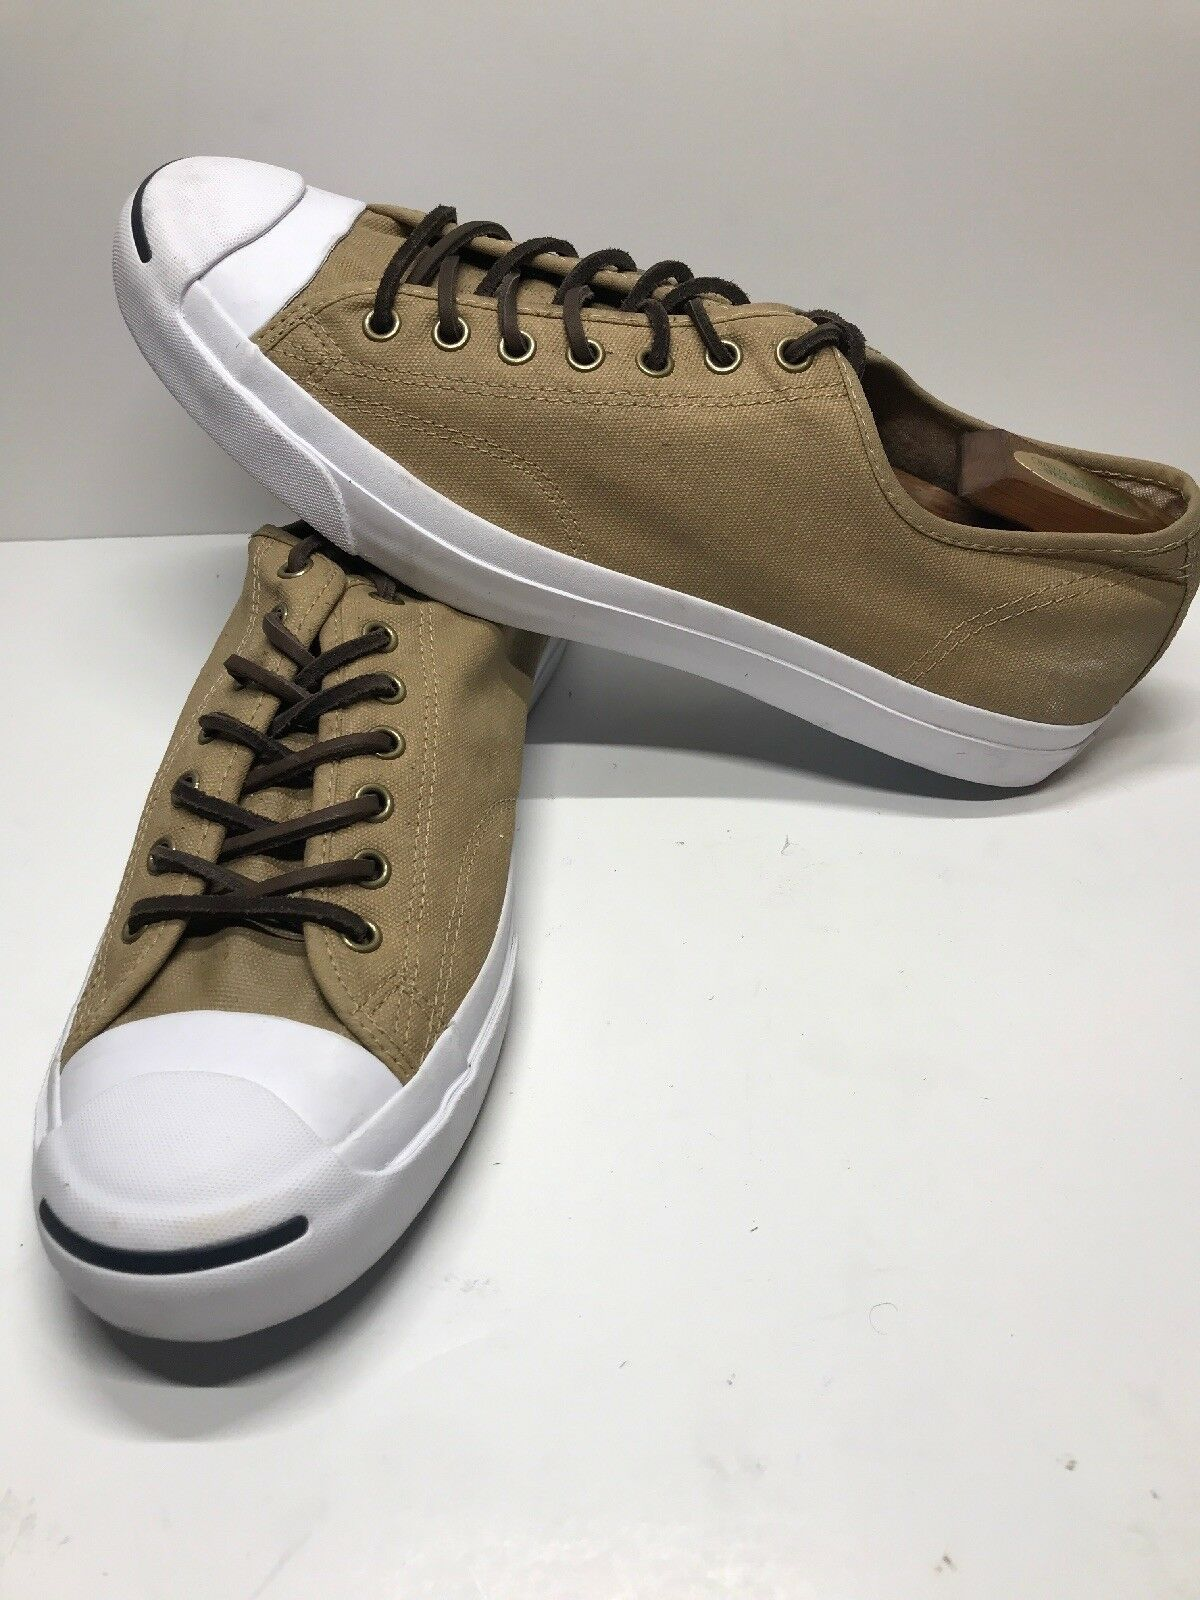 Converse Jack Purcell Signature Tan Lace Up shoes Sneakers Casual Sz12